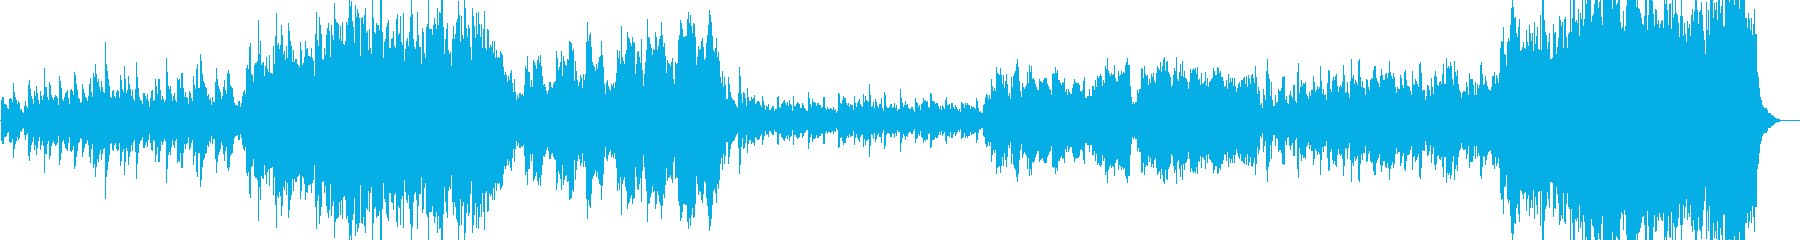 Image of a boy riding a bicycle on a summer road's reproduced waveform